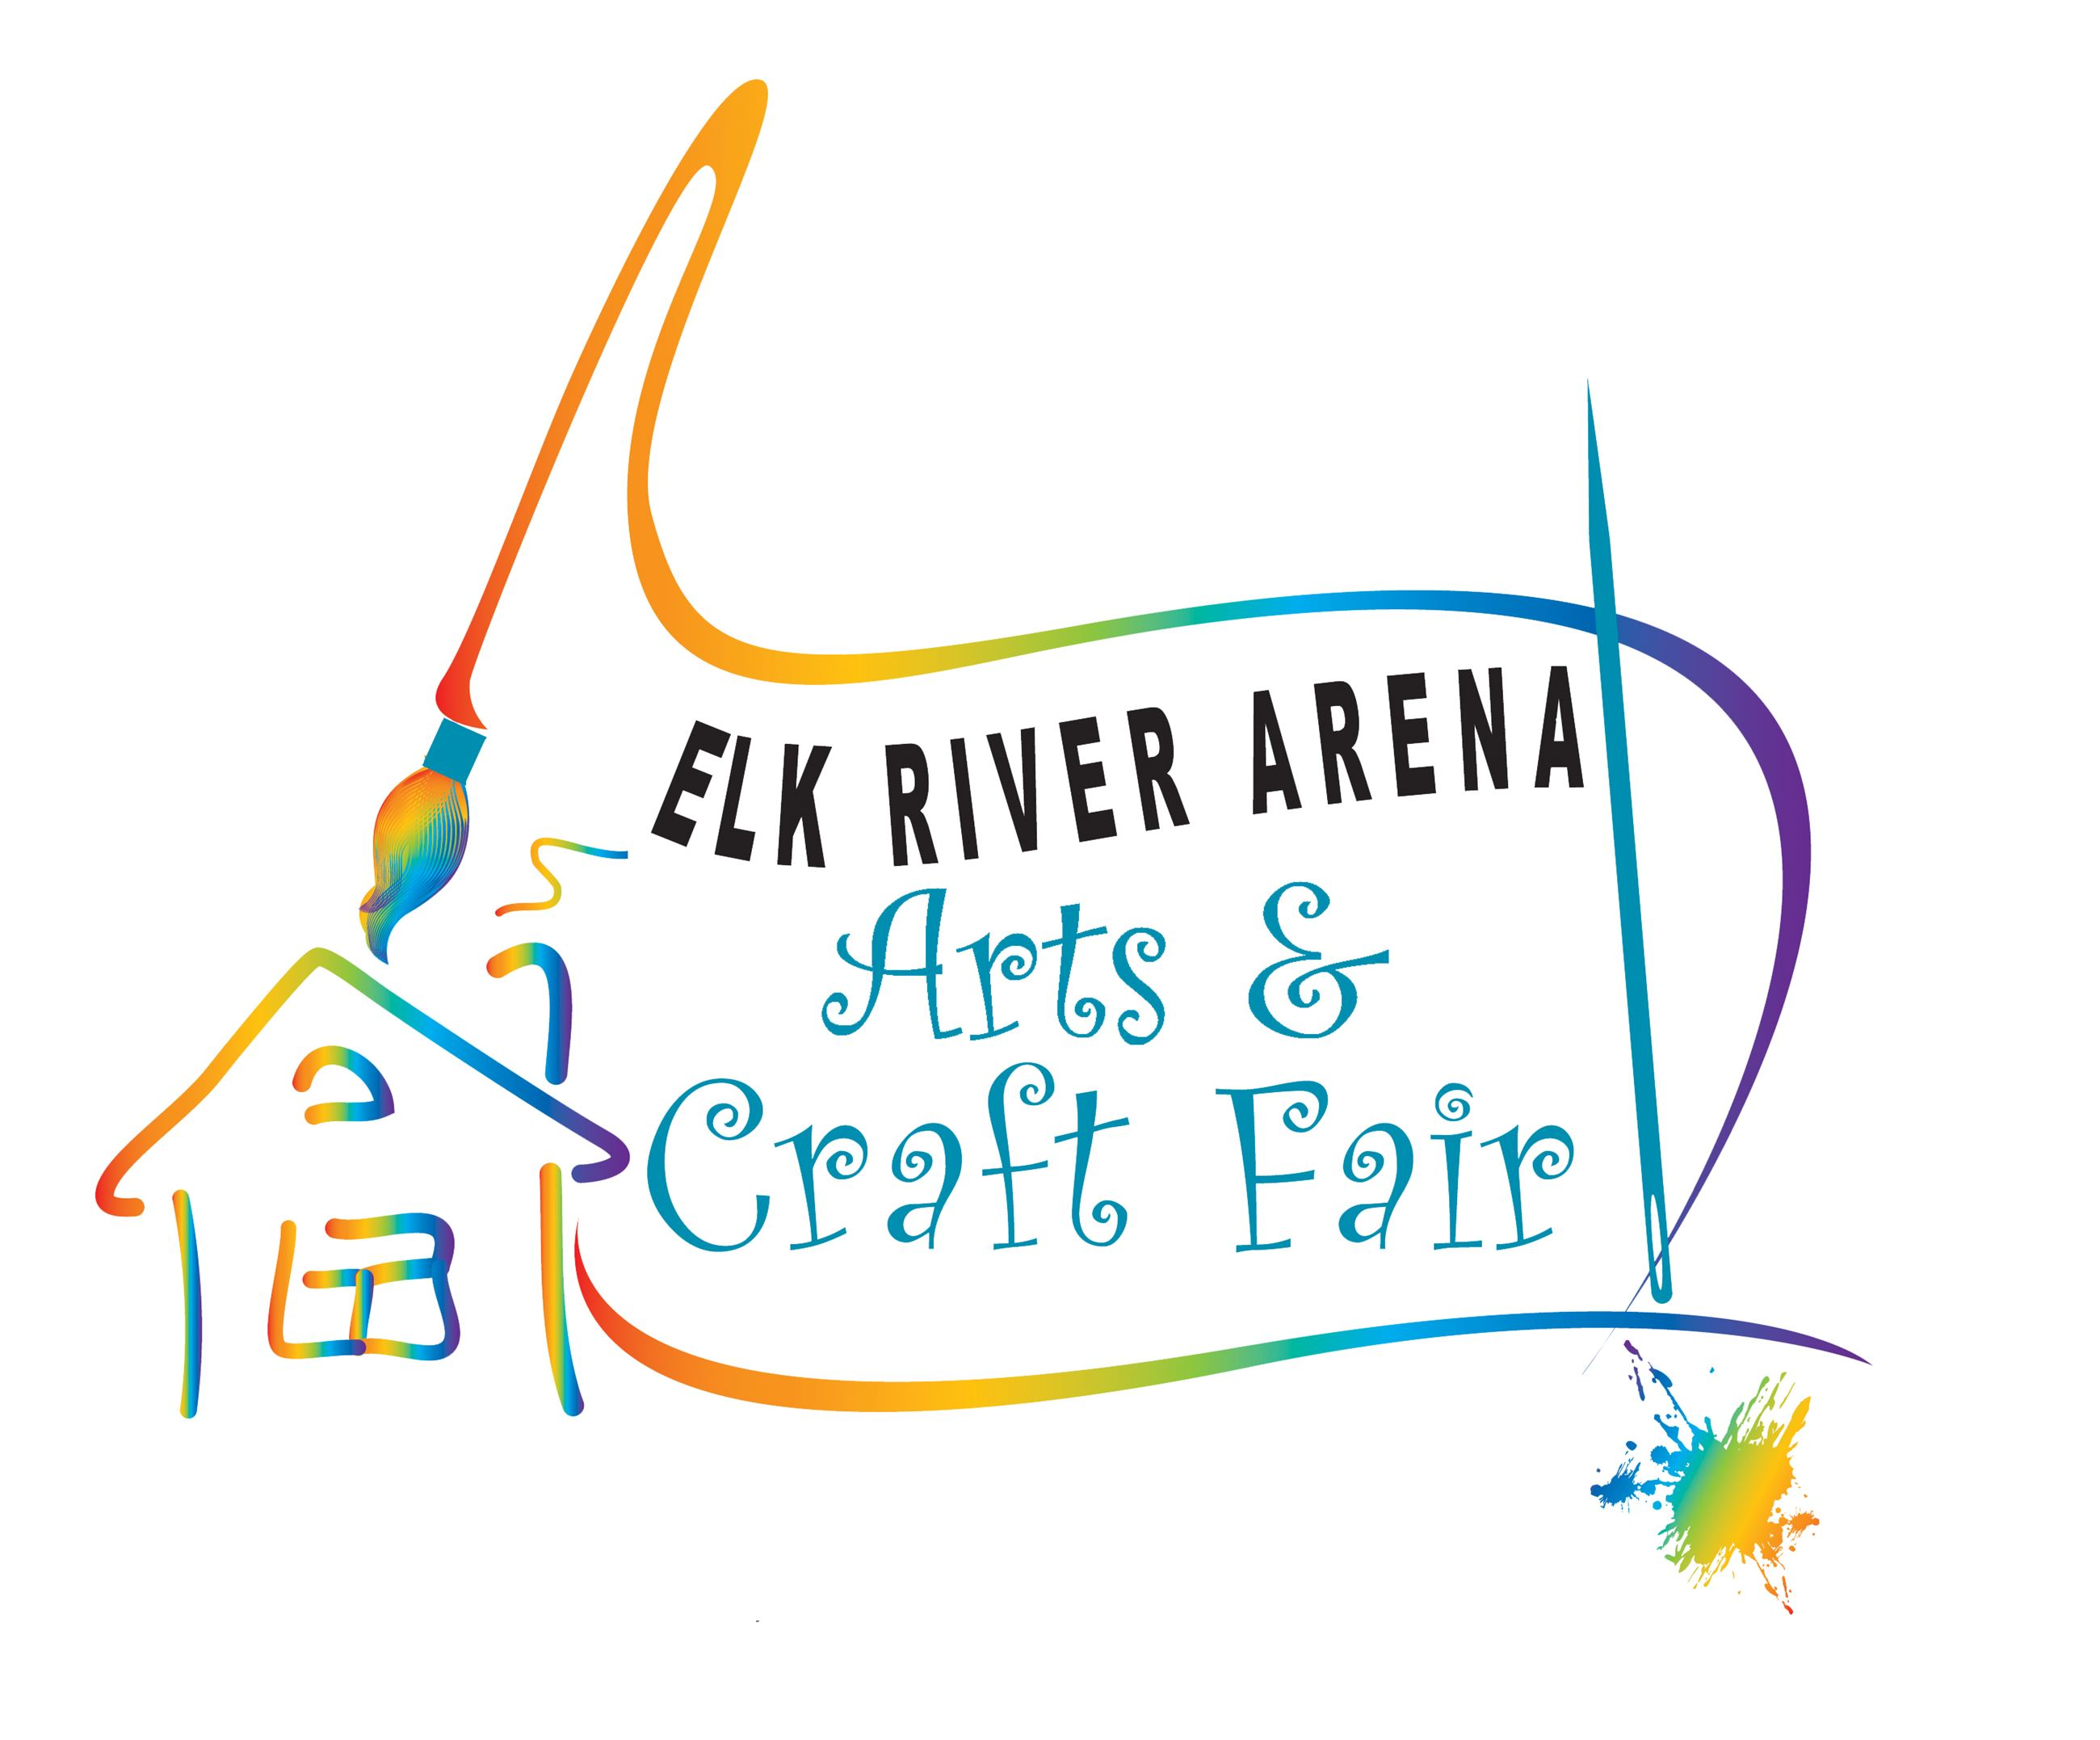 Elk River Arena Arts and Crafts show logo